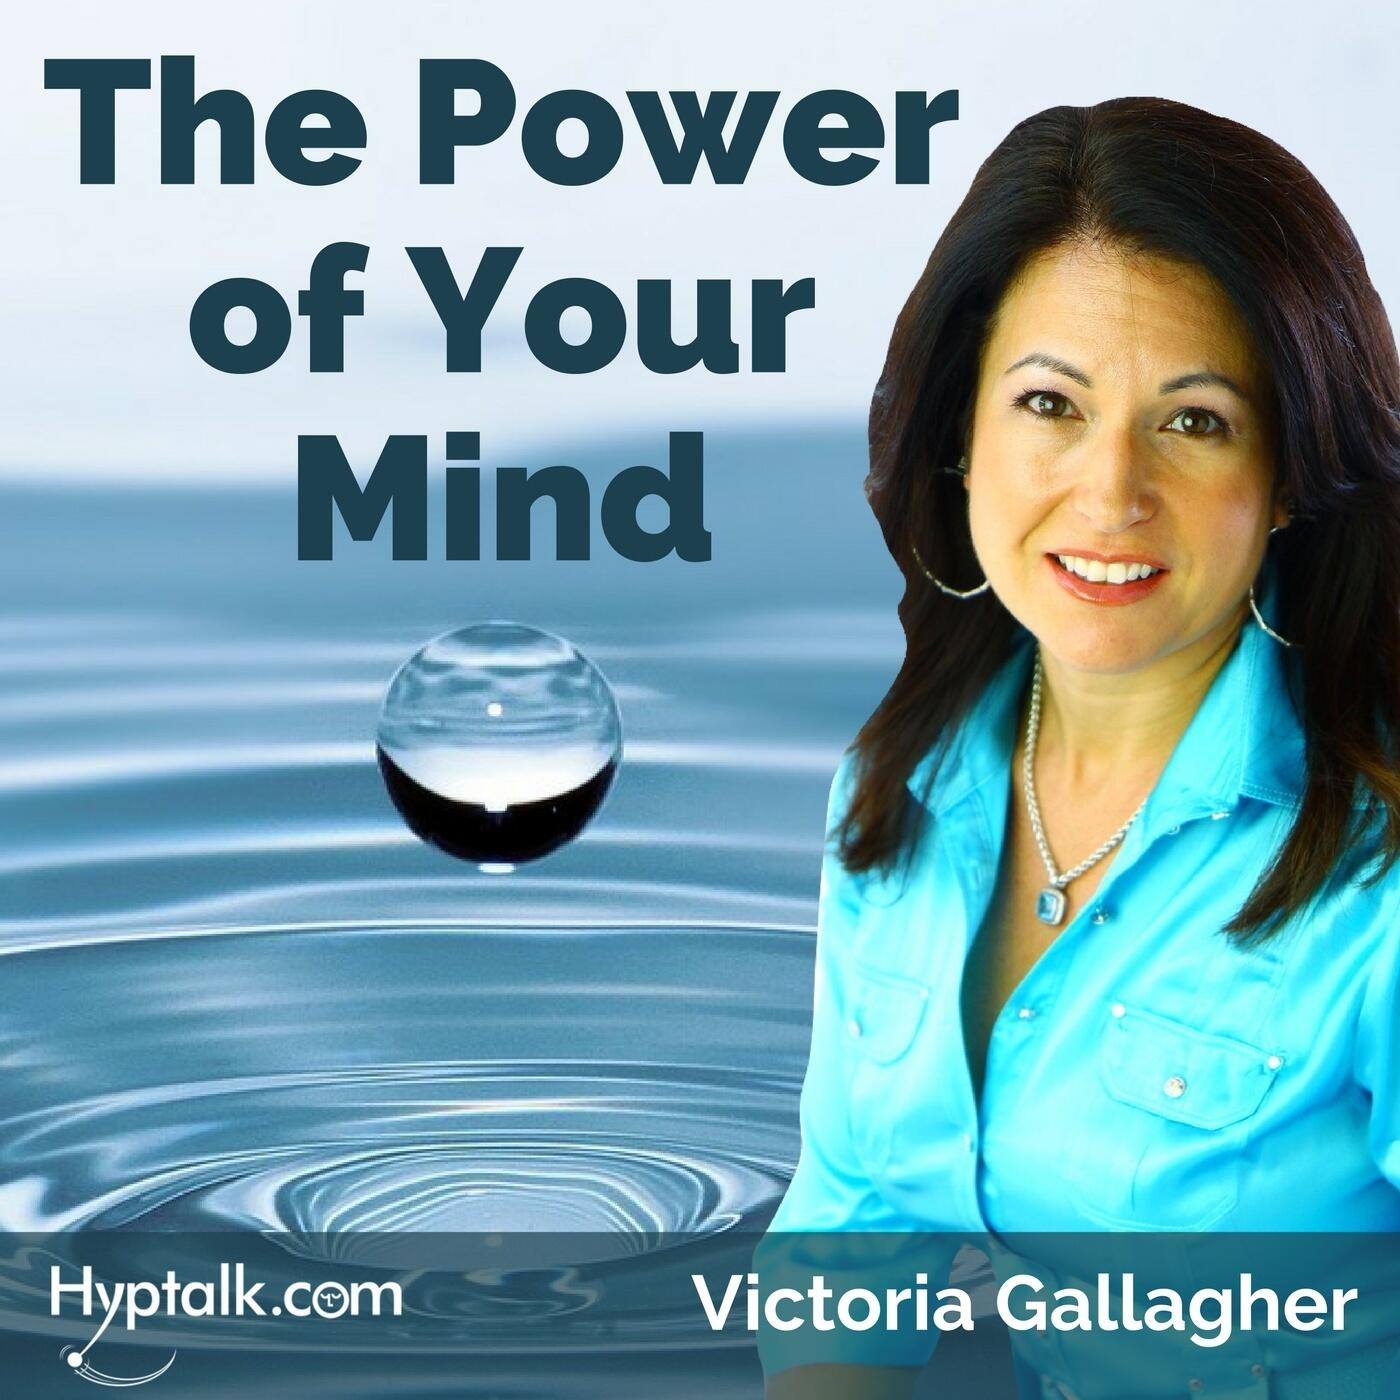 Listen Free to Power of Your Mind | Hypnosis | Law of Attraction | Meditation | NLP | Affirmations | Visualization on iHeartRadio Podcasts | iHeartRadio